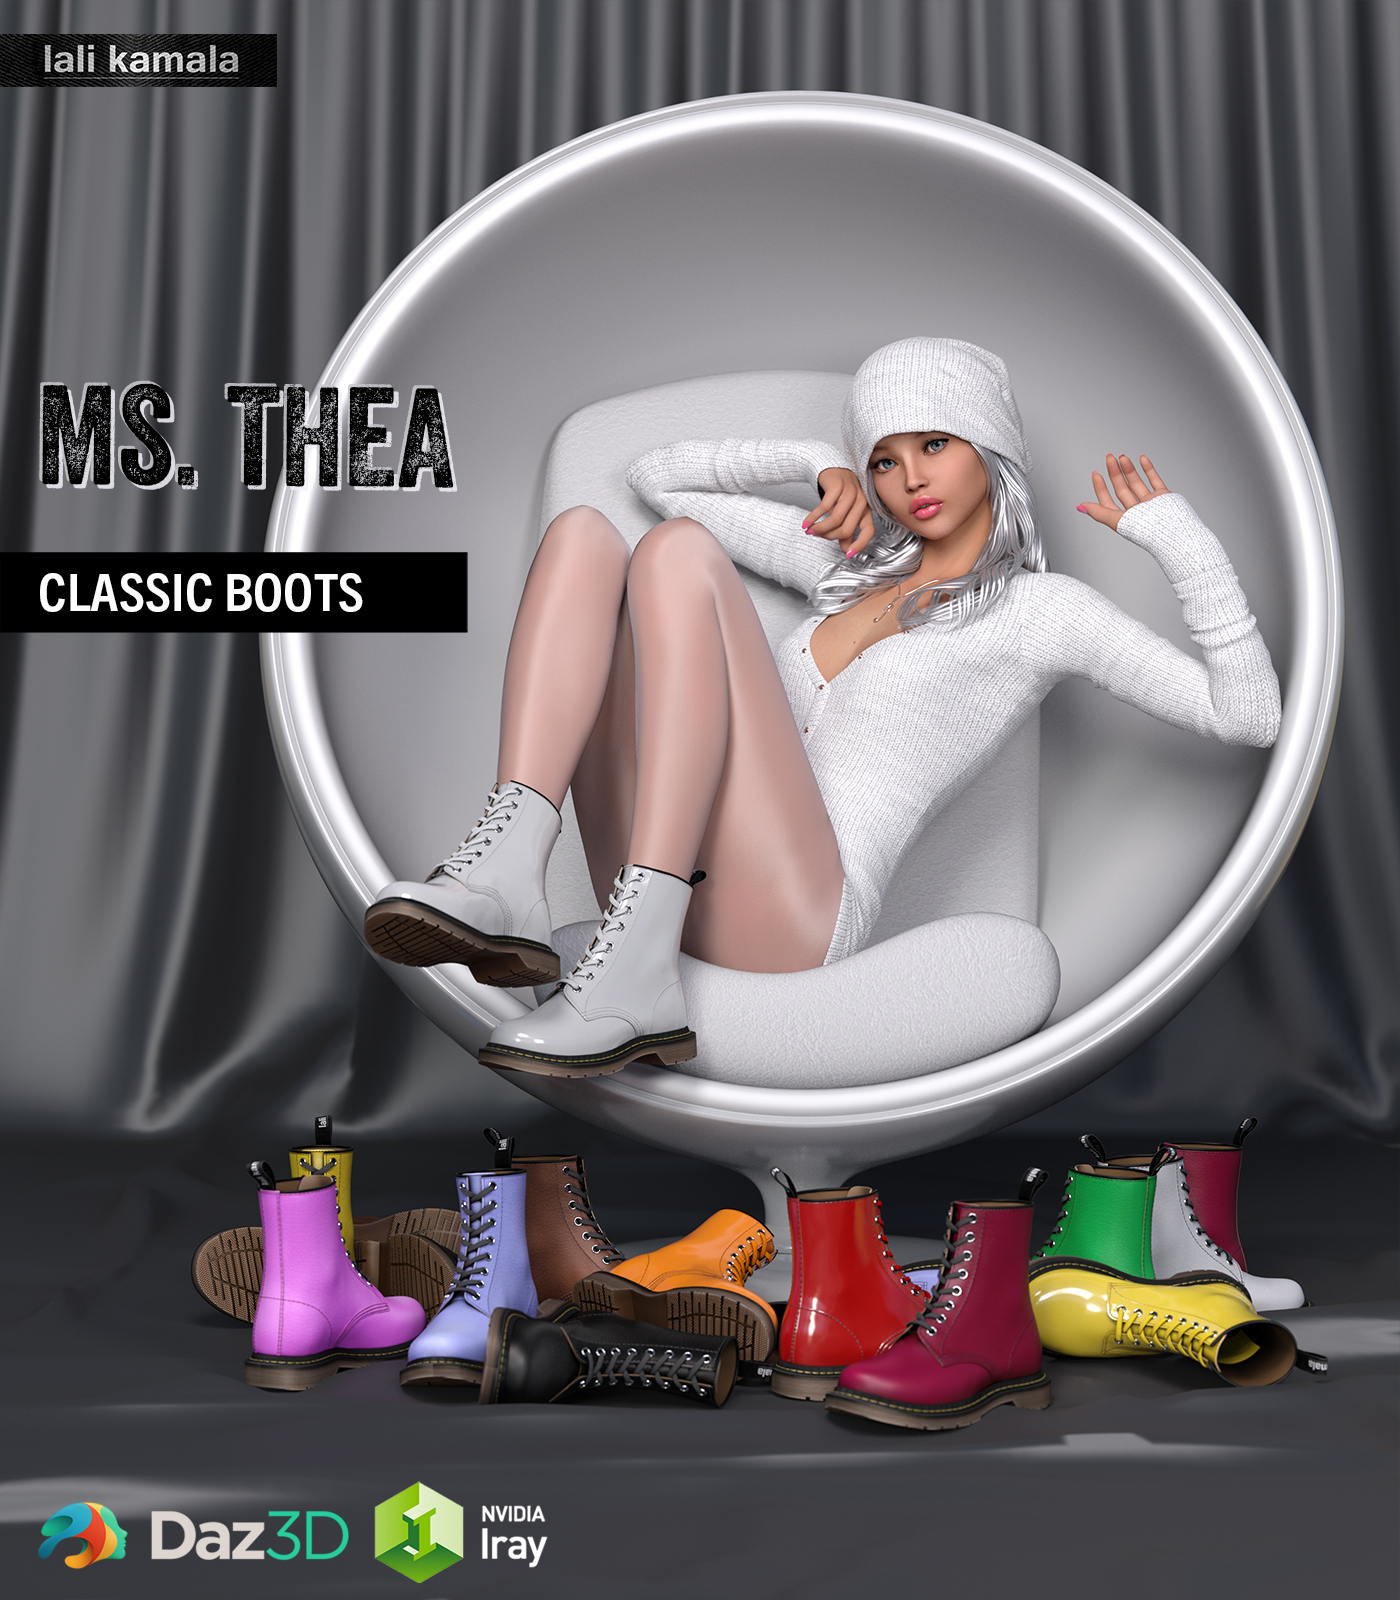 Ms. Thea - Classic Boots